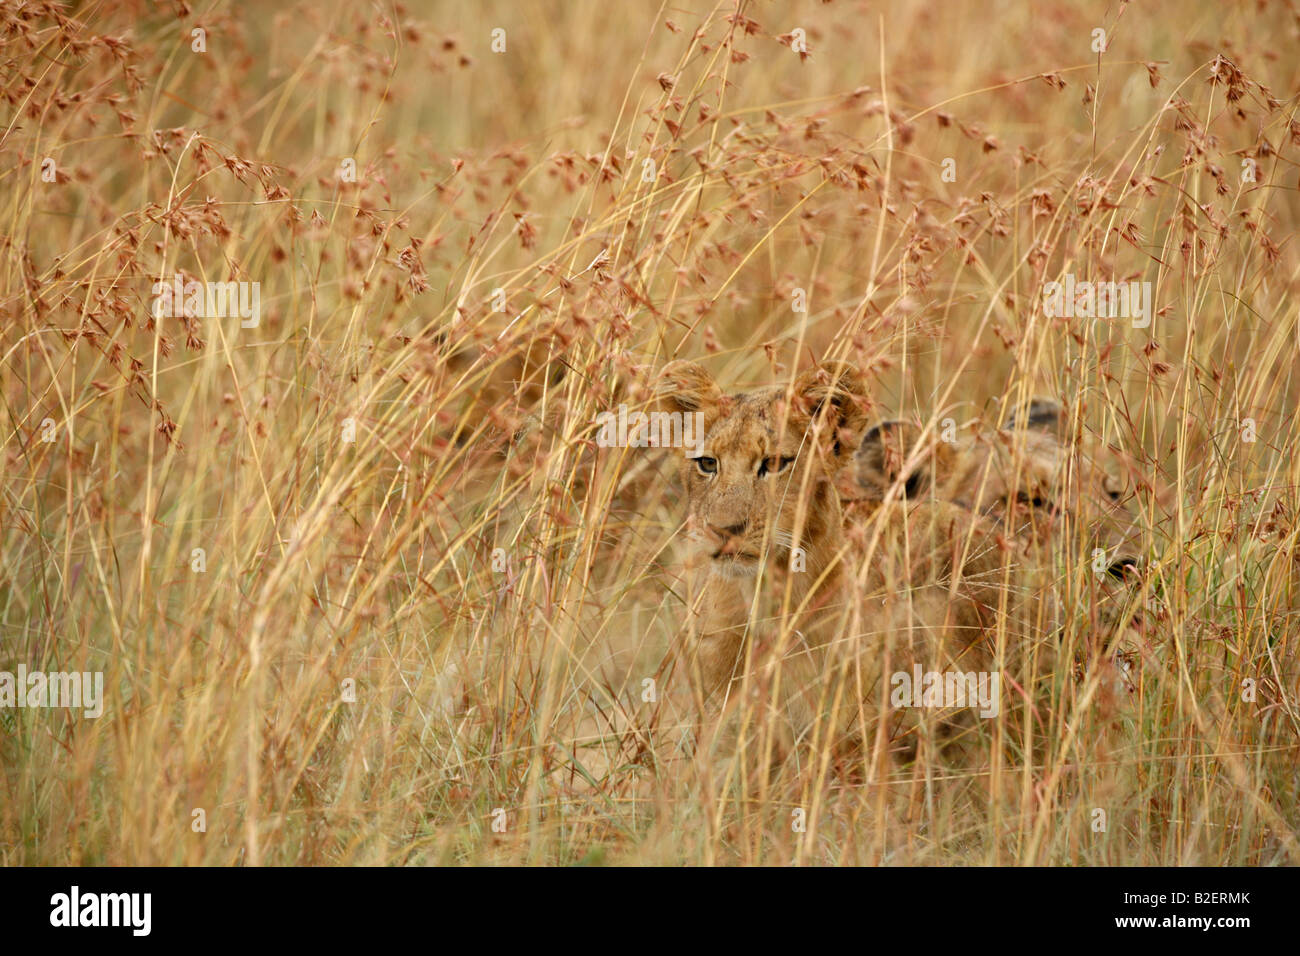 Lion cubs hiding in long grass - Stock Image